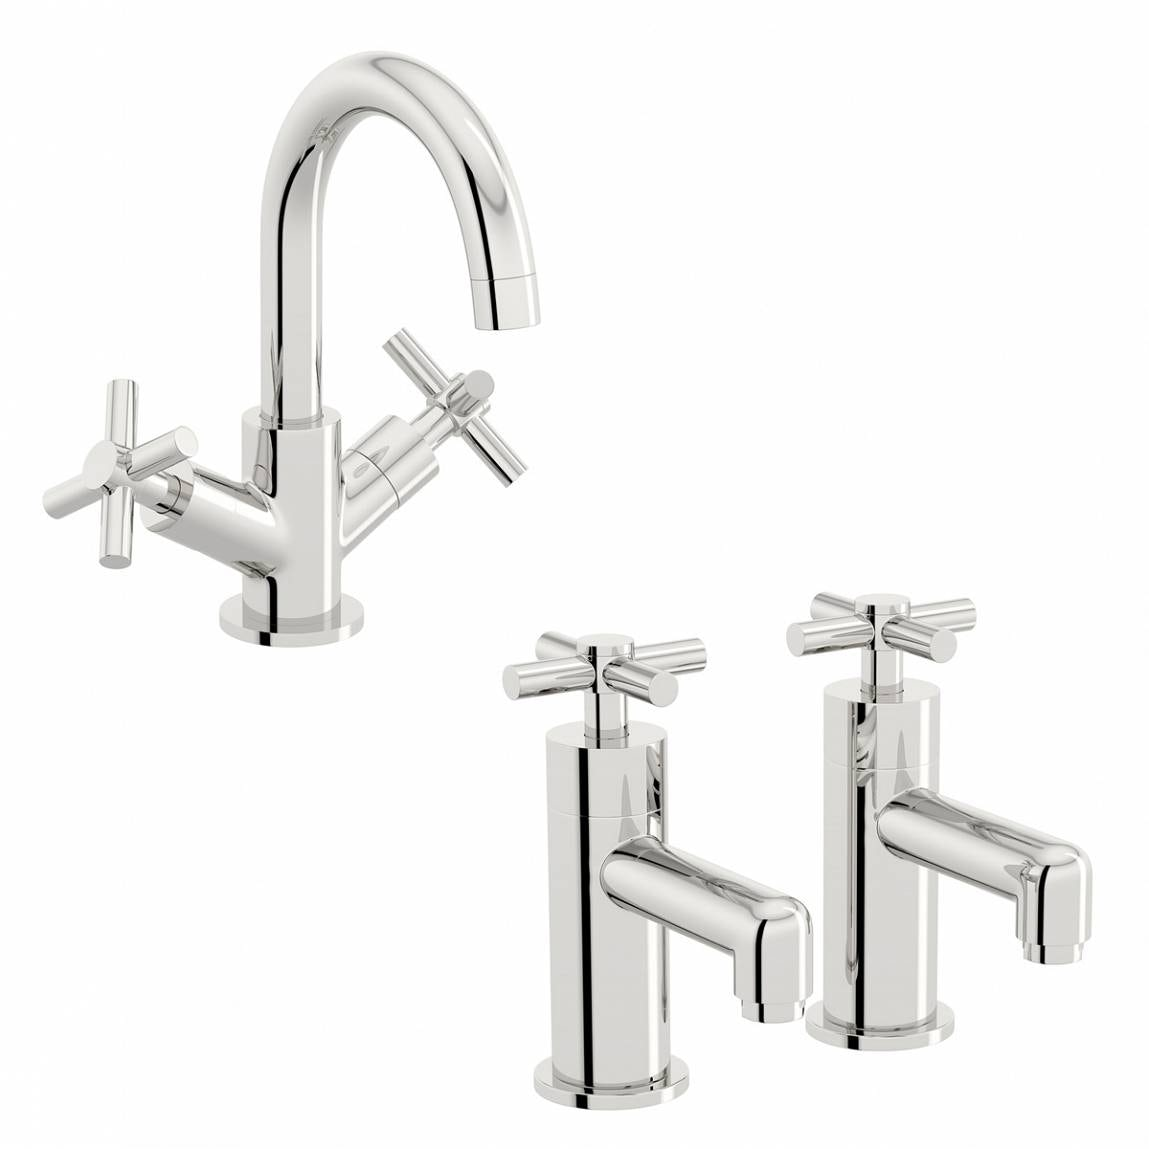 Mode Tate basin mixer and bath tap pack